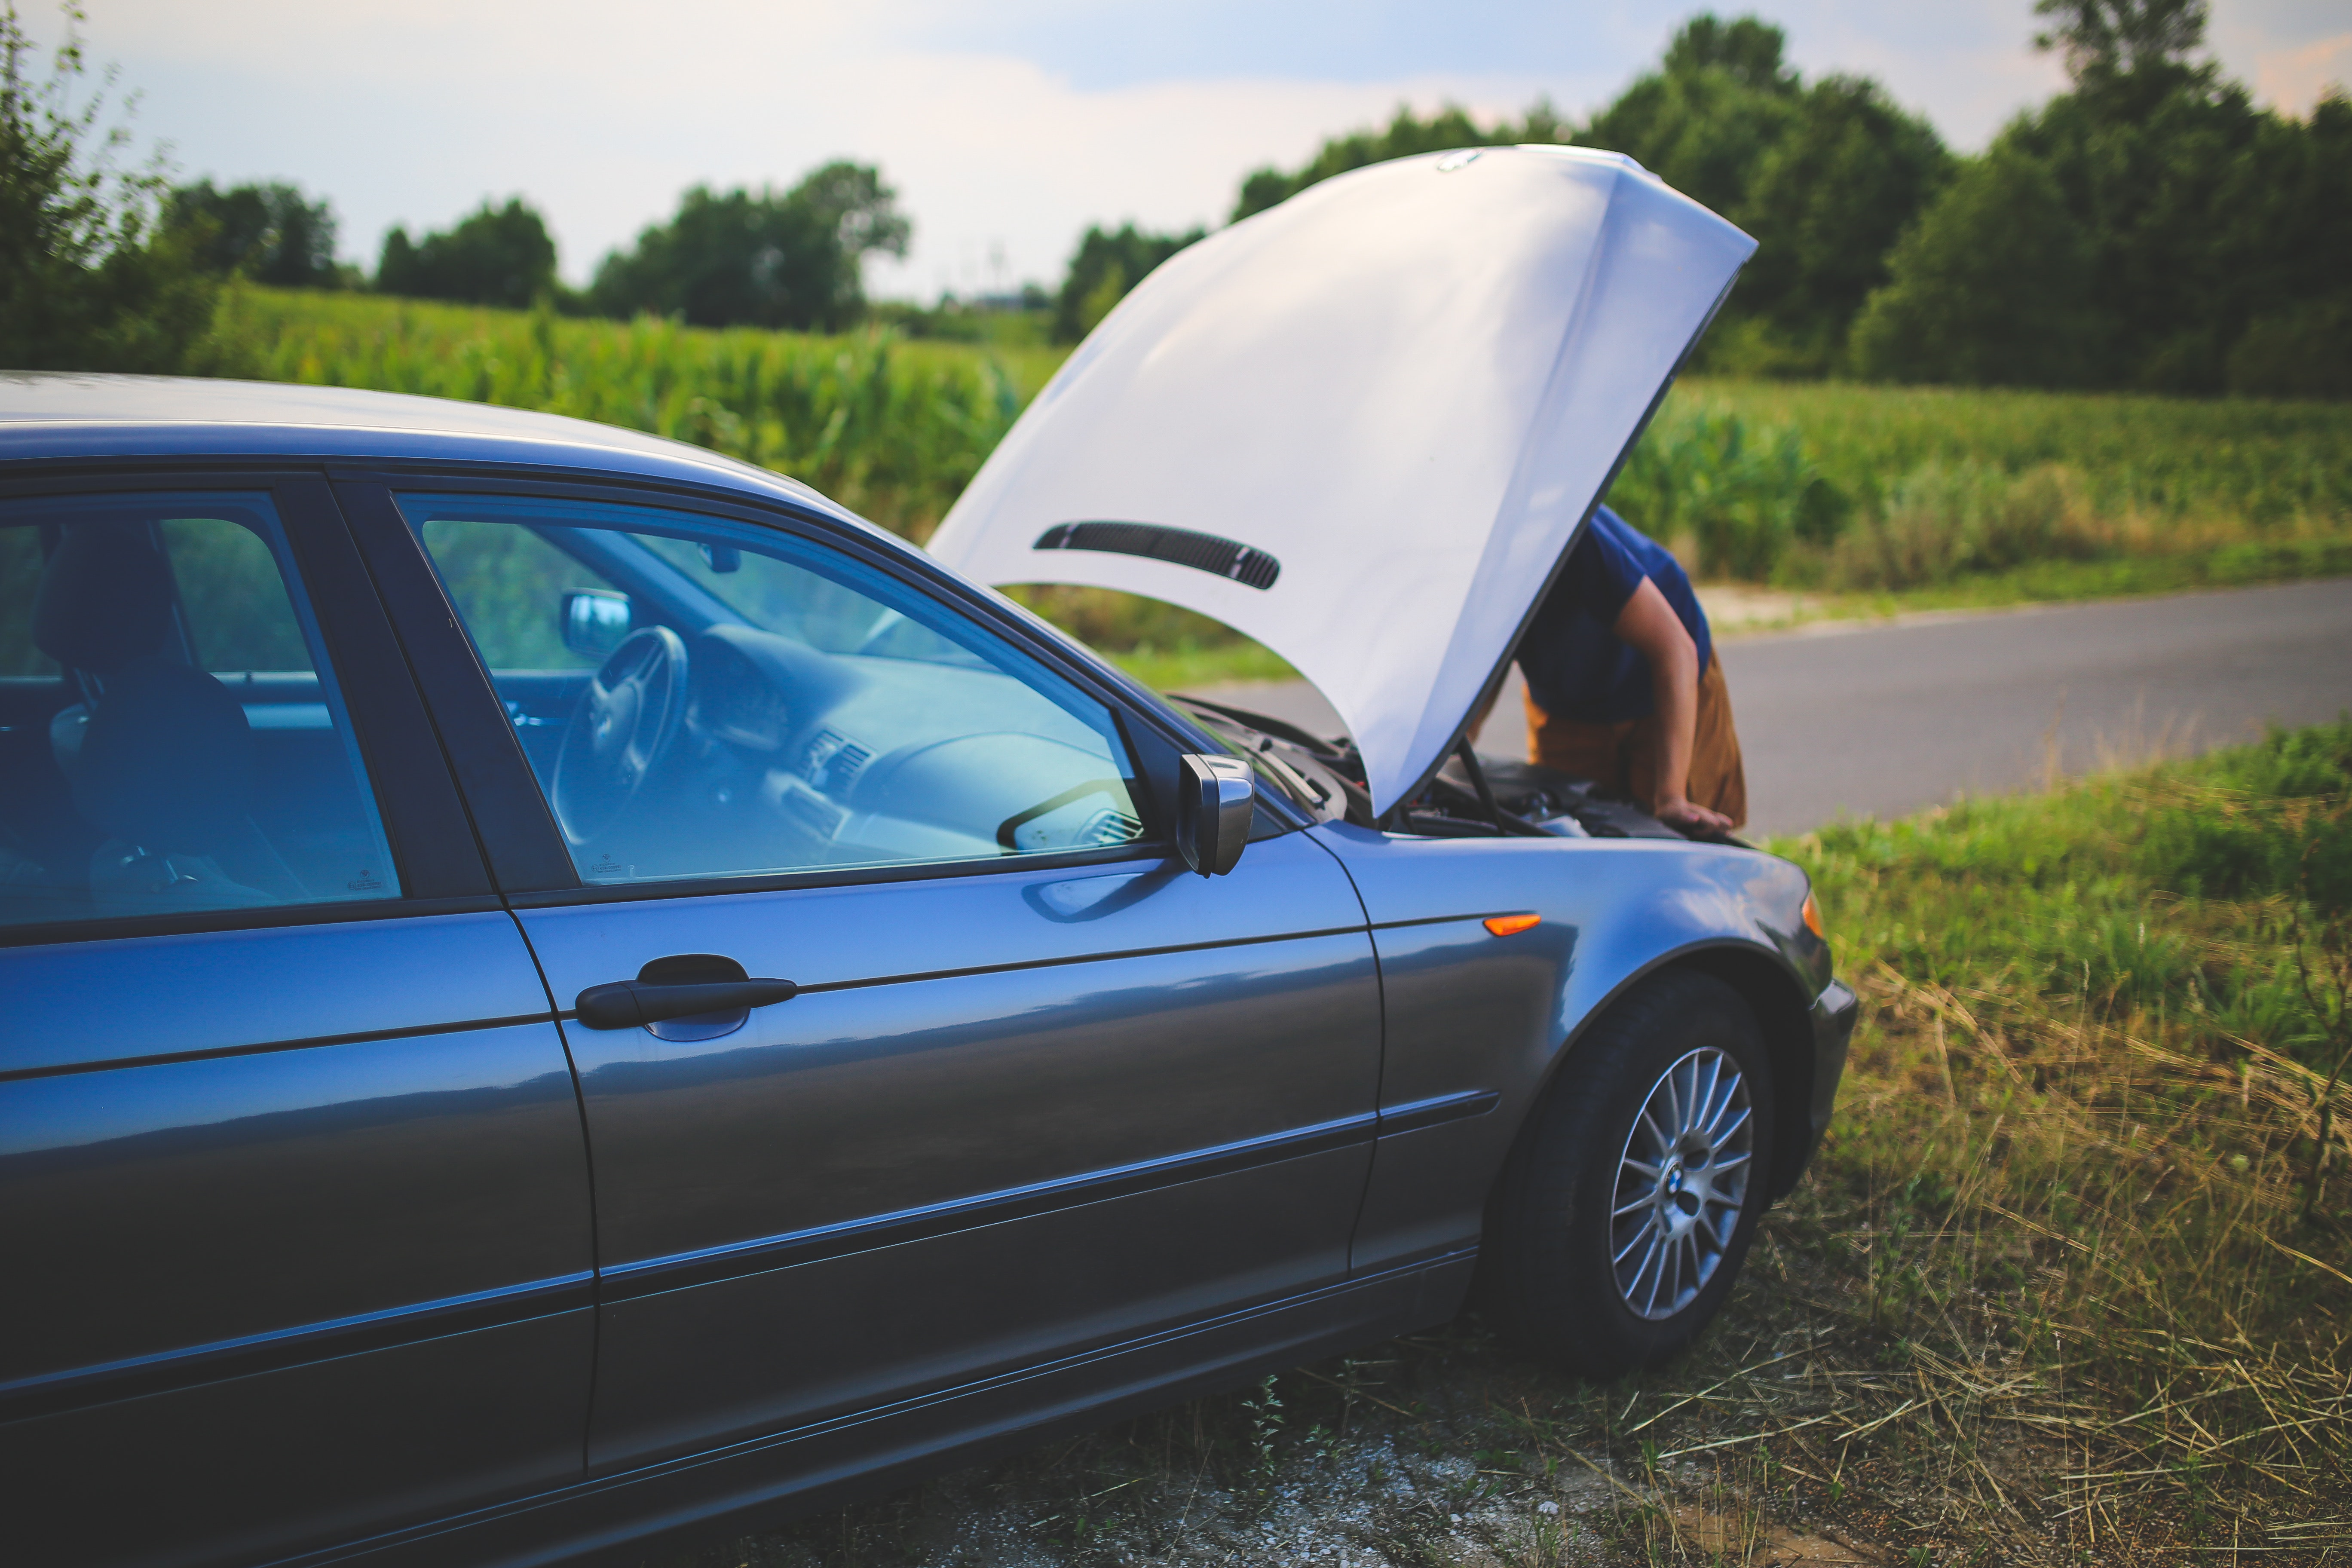 Mobile Motor Trade Insurance: Options to Keep You Moving